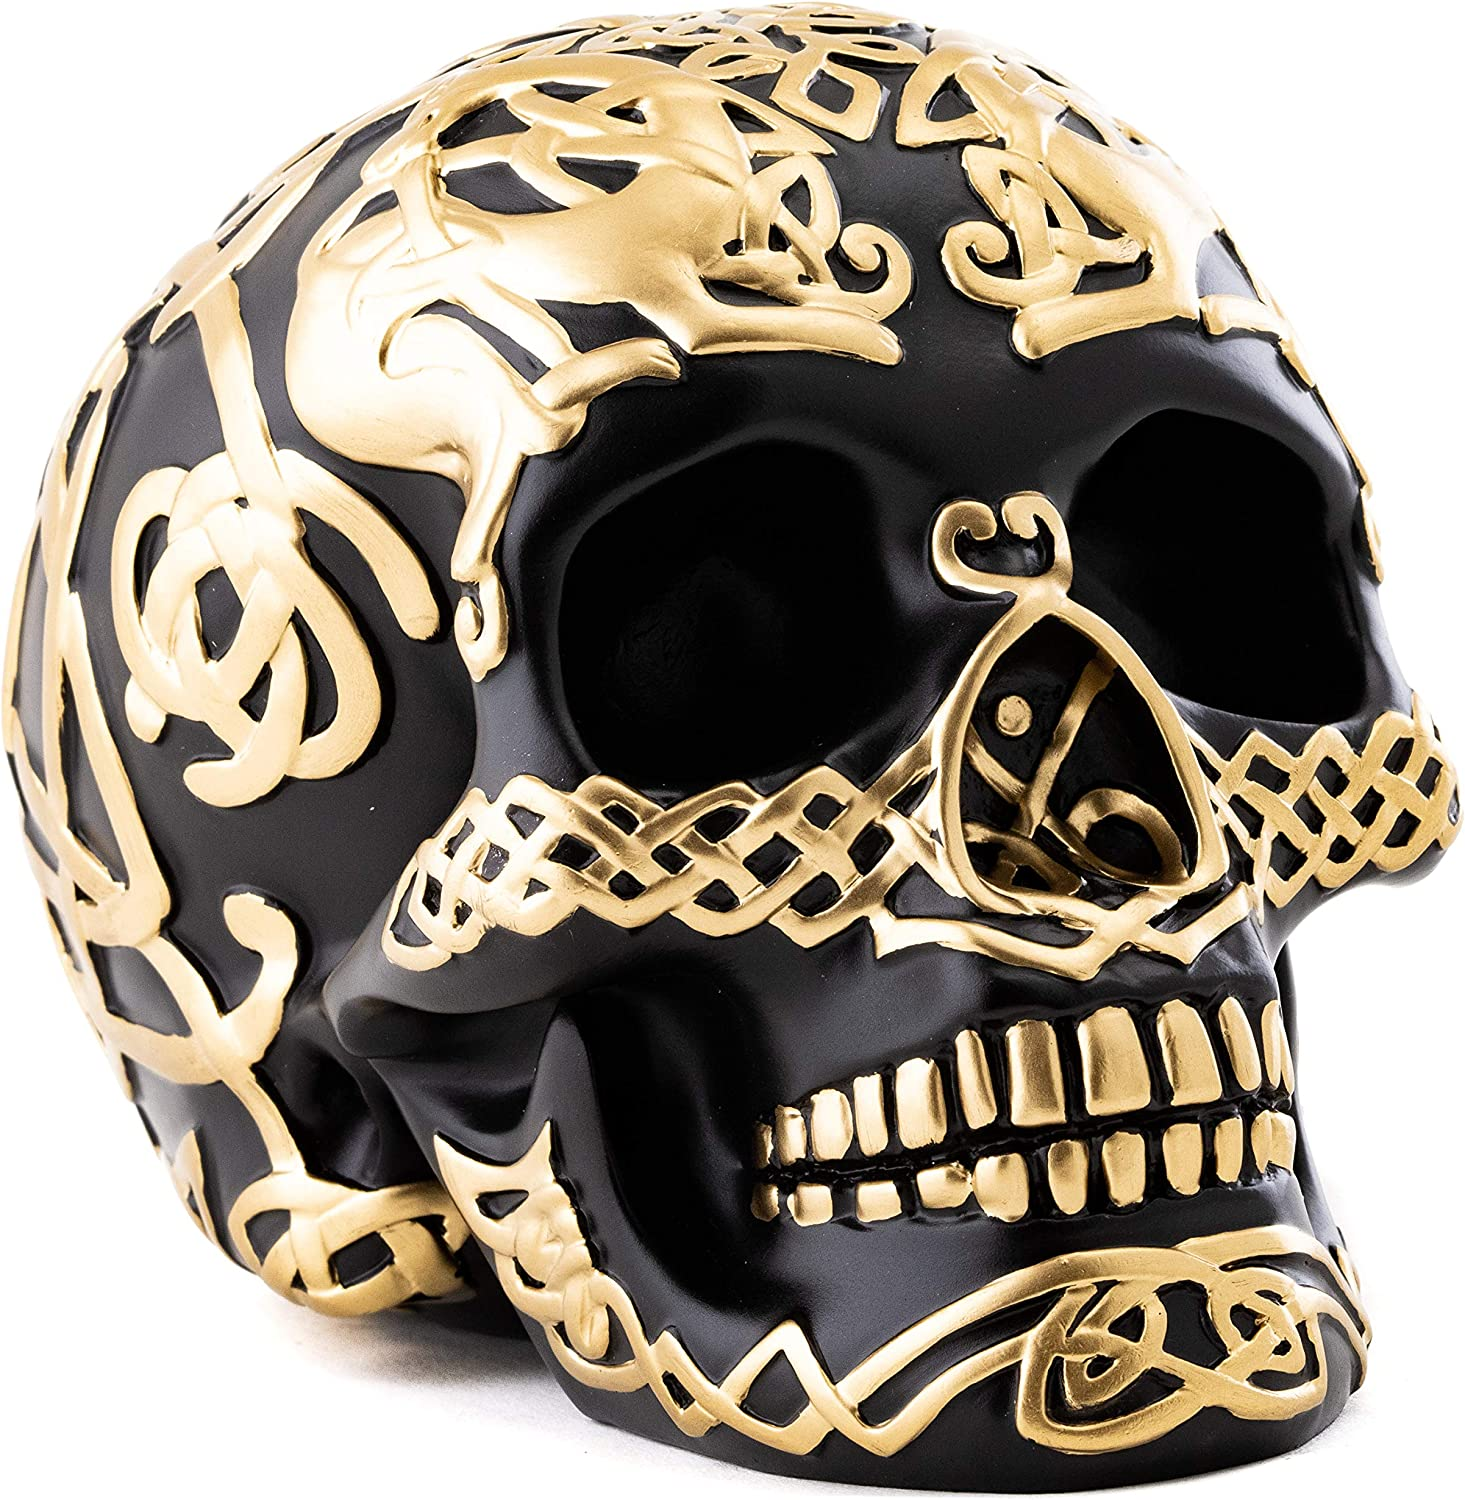 Top Collection Gothic Black and Gold Human Skull Head - Hand-Painted Resin Black Decorative Skull Sculpture with Gold Accents - 4.75-Inch Collectible Figurine (Celtic Black & Gold)